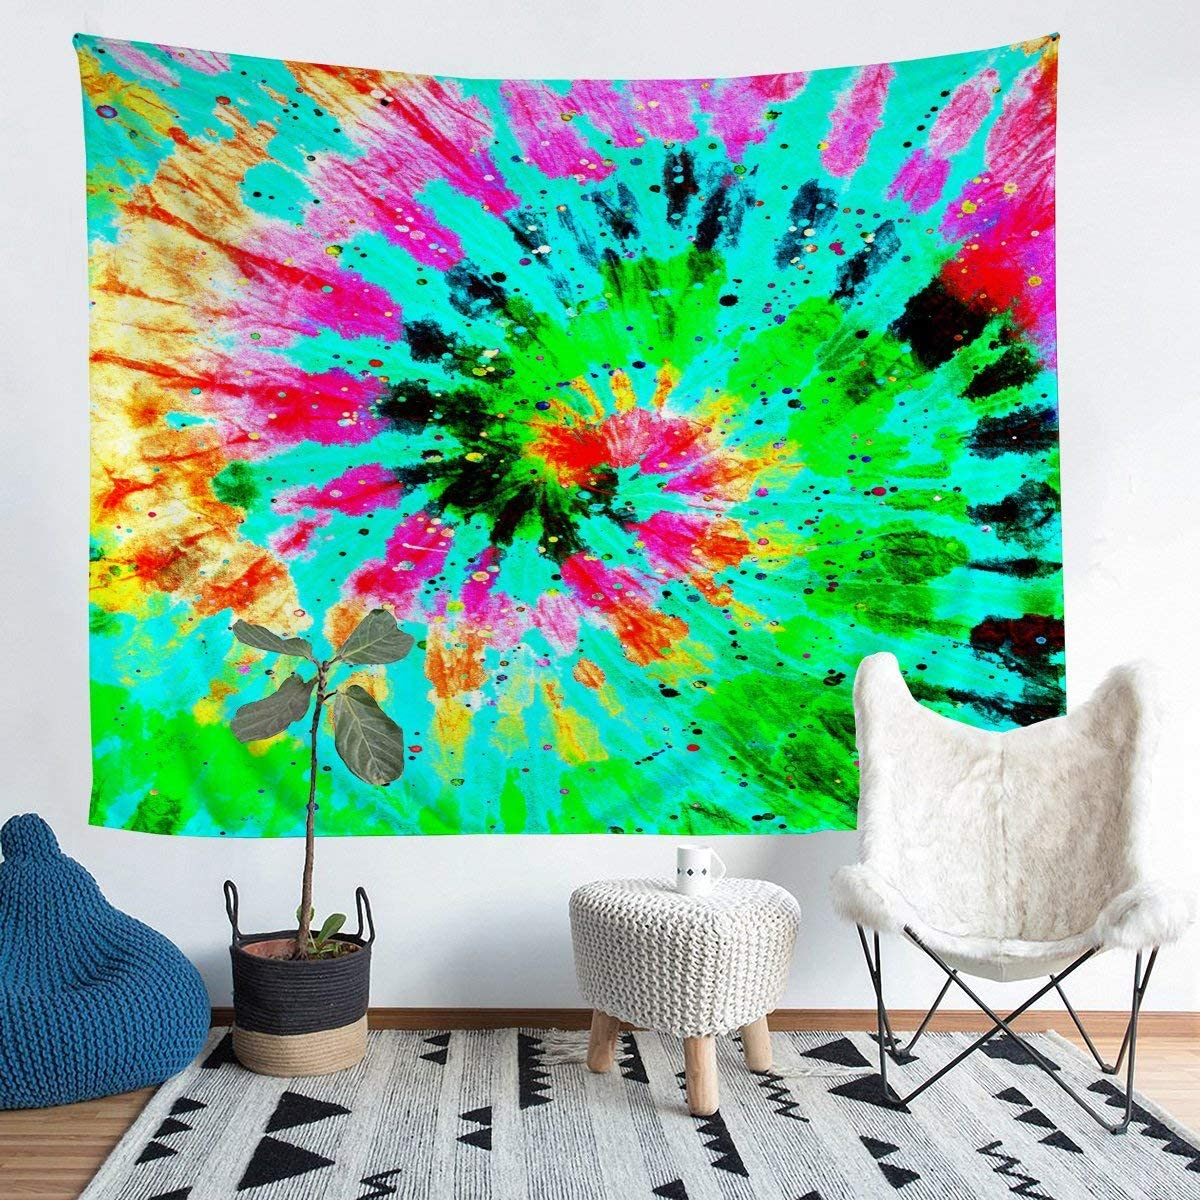 Blue Tie Dyed Tapestry,Kids Tie Dyed Wall Hangings Art,Green Yellow Spiral Psychedelic Gypsy Spiral Swirl Printed Boho Hippie Home Decor Collection Tapestries,Fashion Picnic Blanket Blck Pink,Blue